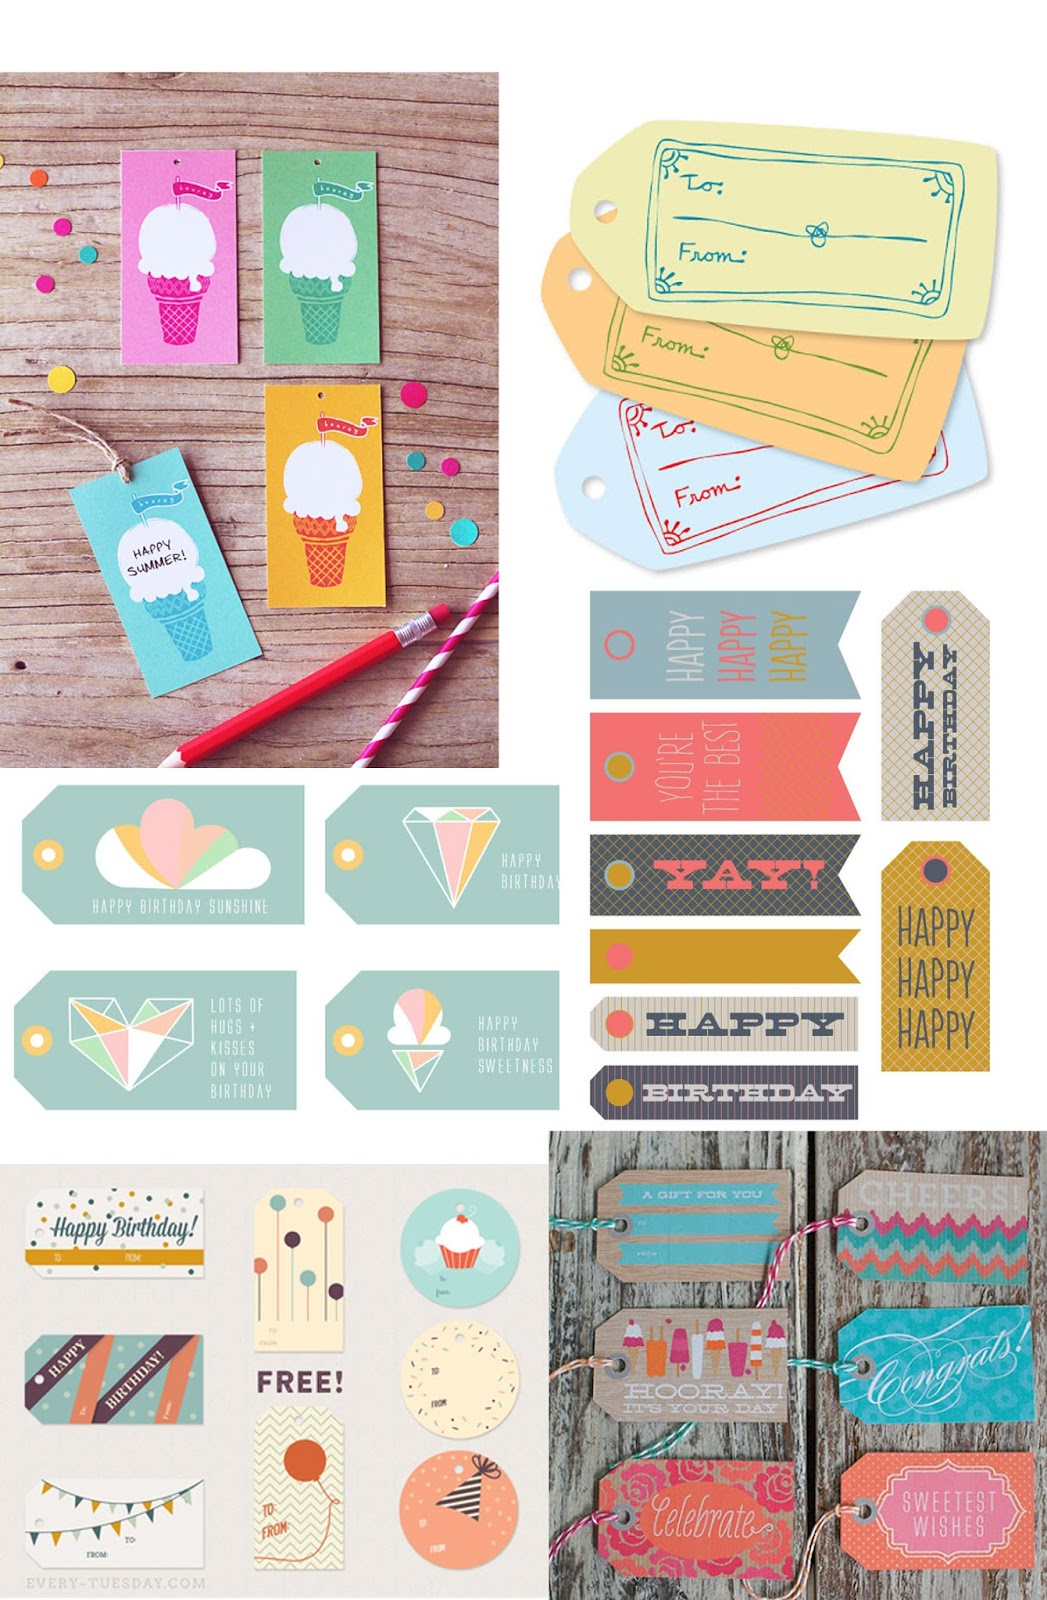 Tell free printable birthday tags tell love and party free free free i love free i love gift tags like these not only because they are so dang cute but if you have some old boring wrapping paper or box negle Gallery